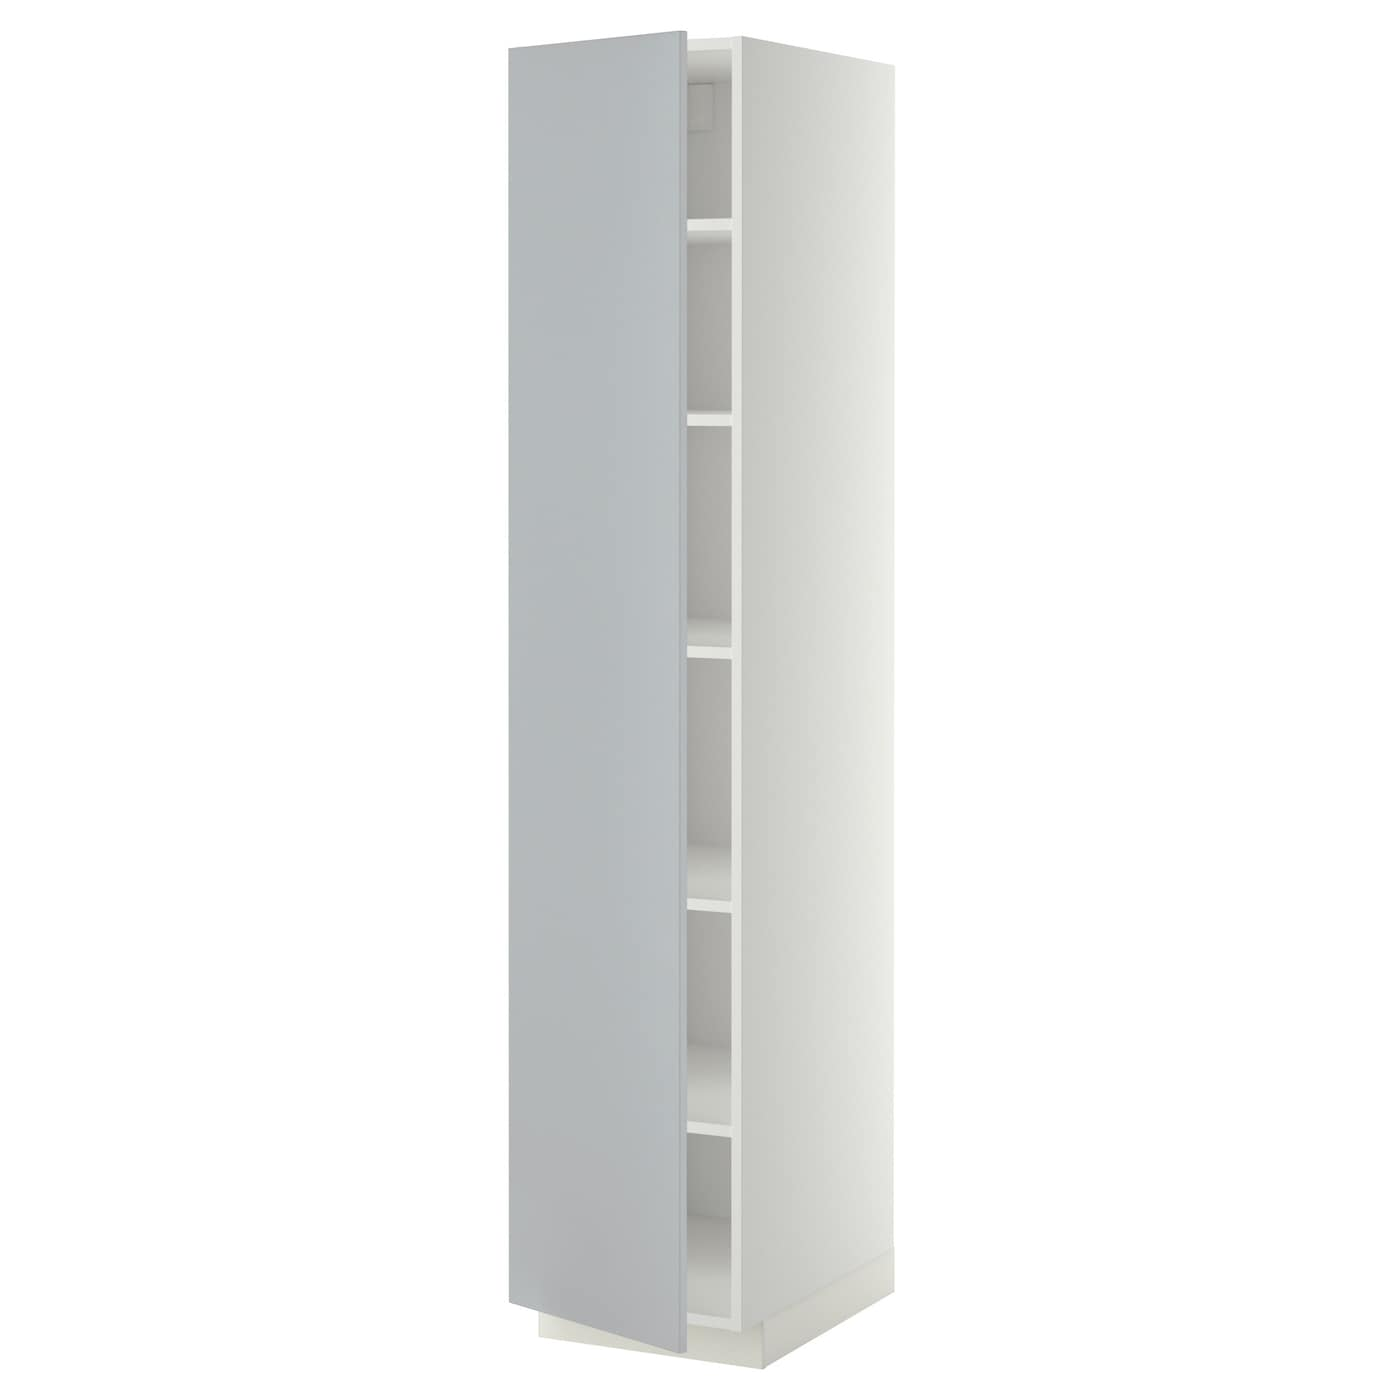 METOD High cabinet with shelves White veddinge grey